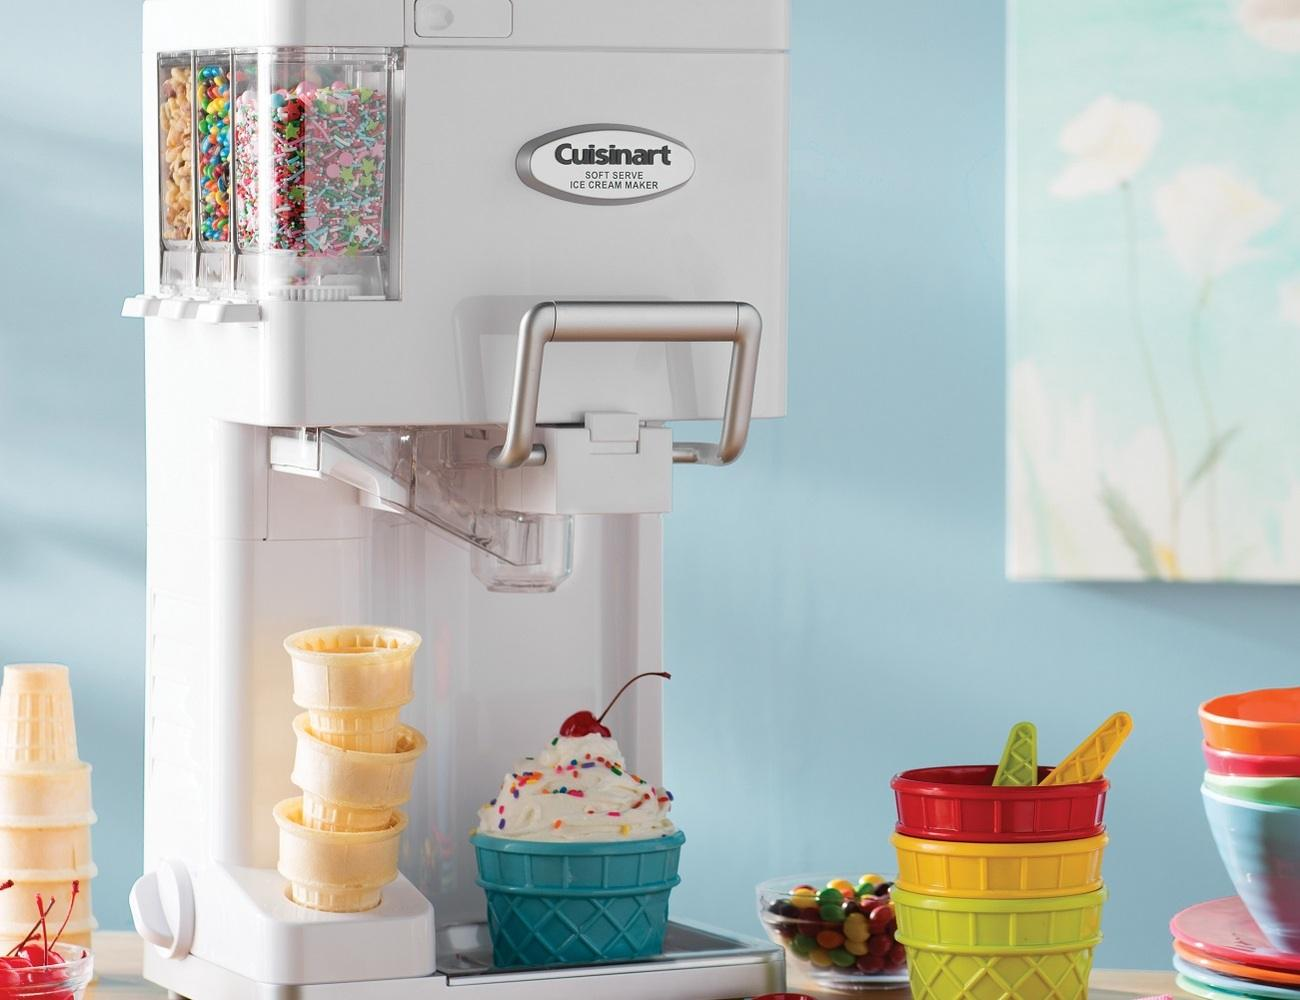 Cuisinart+Mix-It-In+Soft+Serve+Ice+Cream+Maker